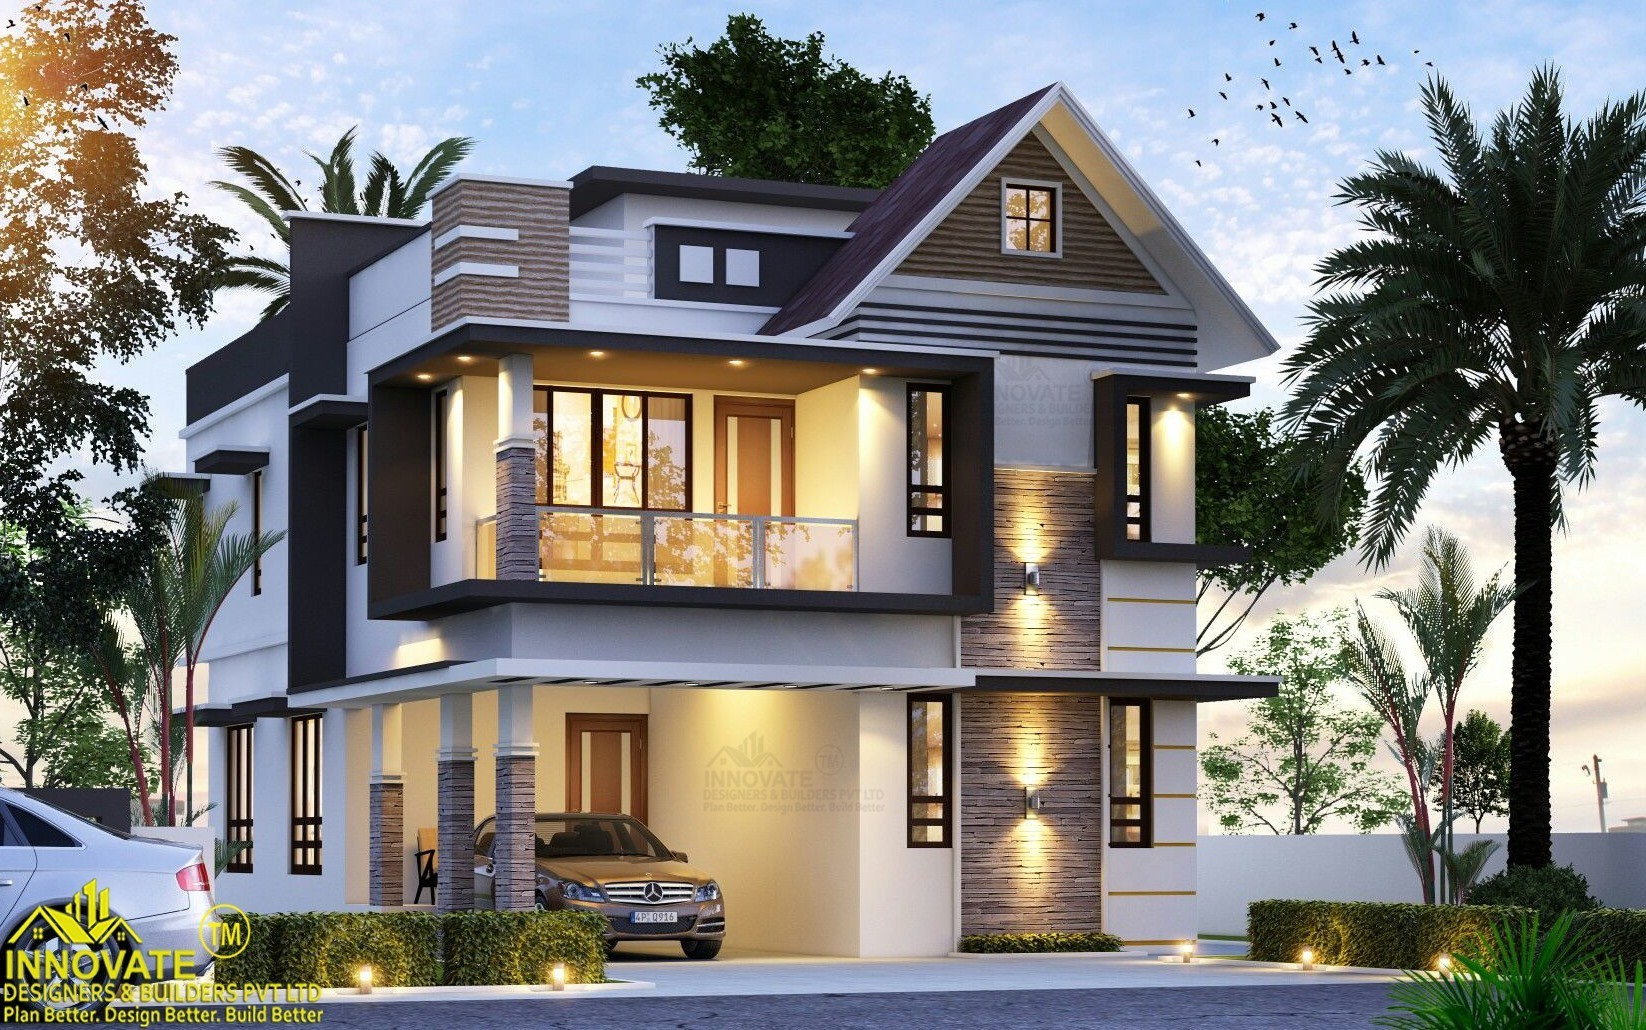 1730 Square Feet 3 Bedroom Two Floor Modern House and Plan